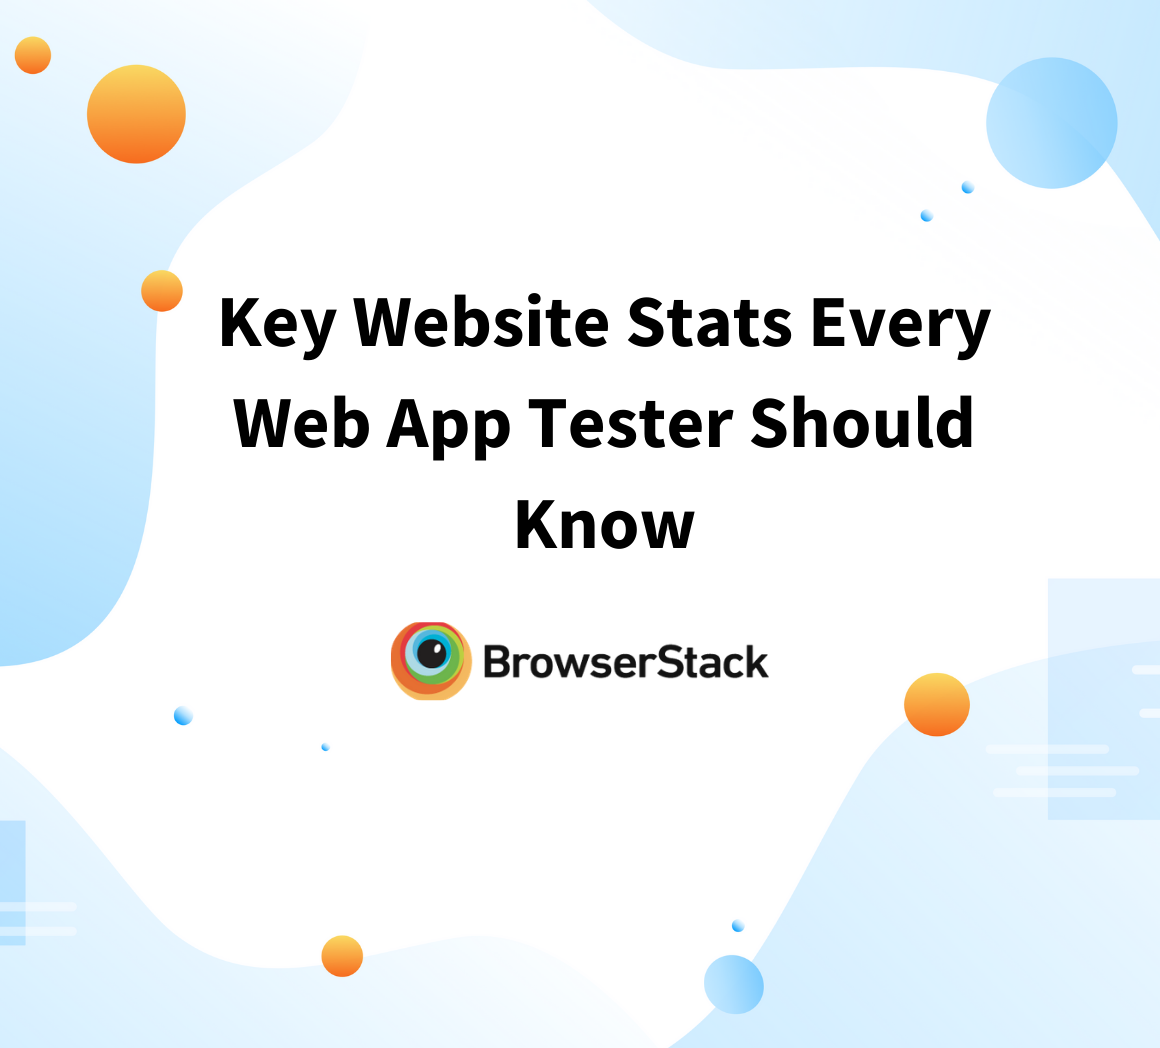 Key website statistics every web app tester should know